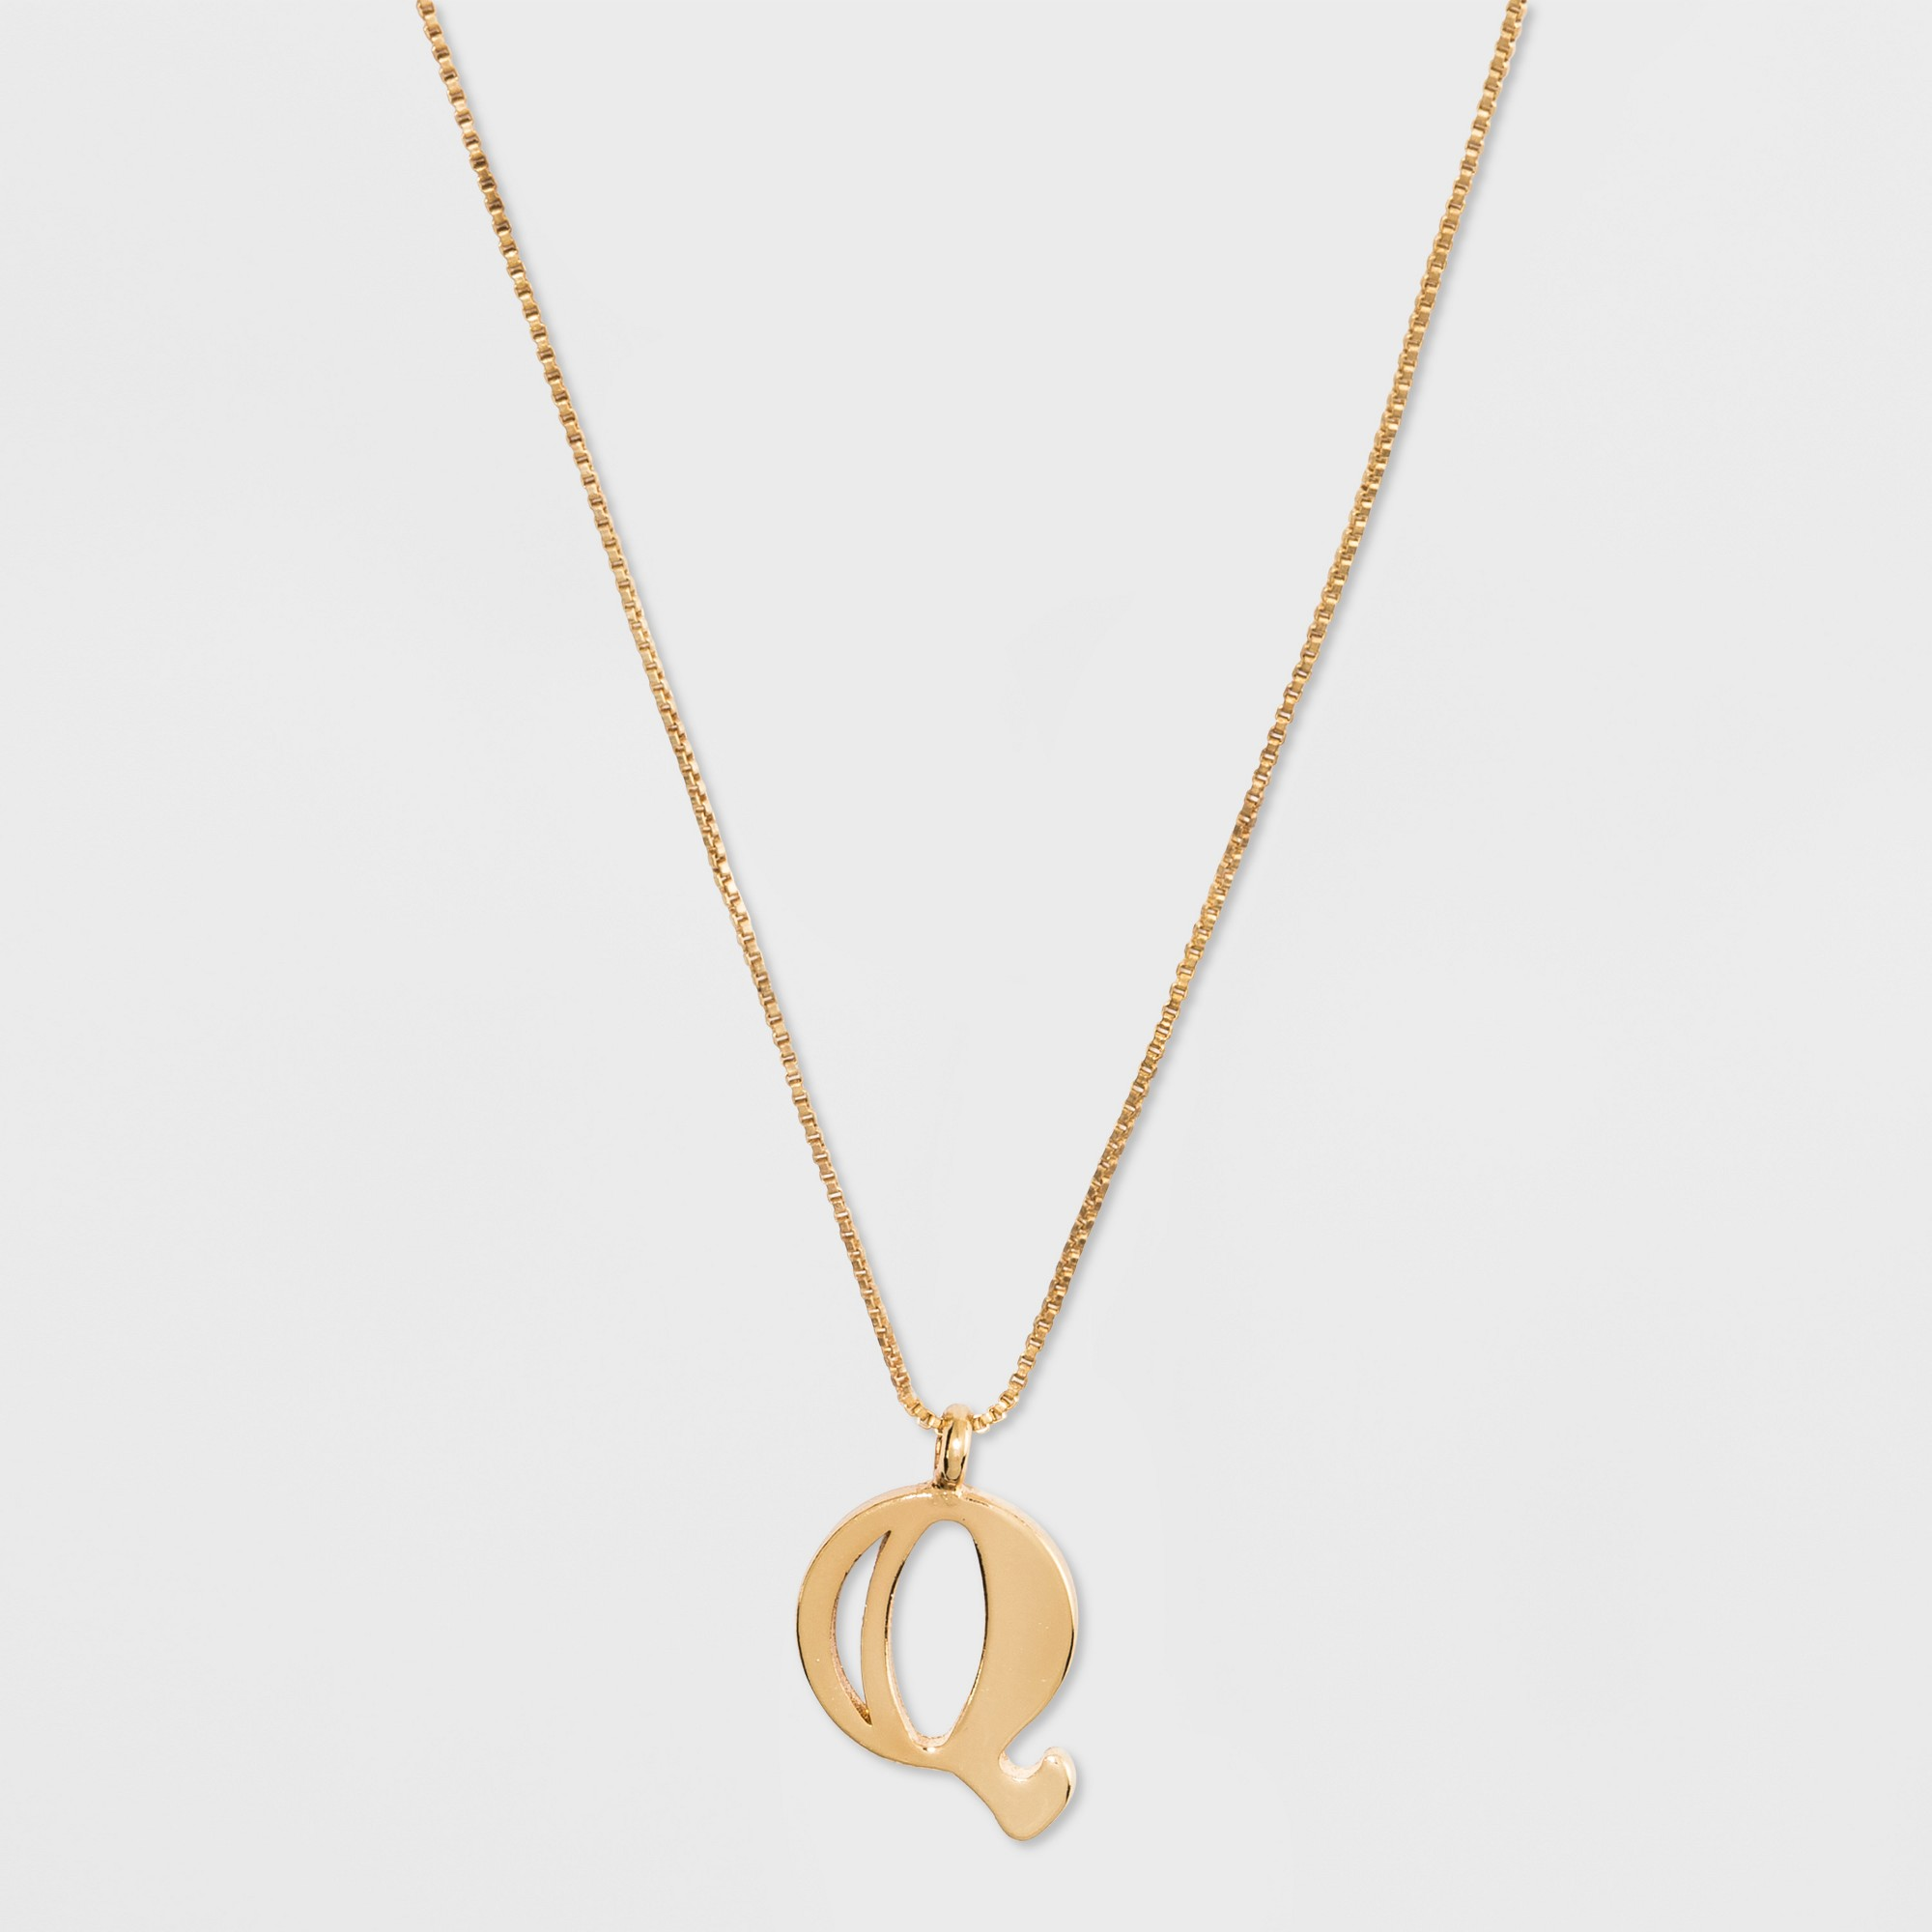 Gold plated initial q pendant necklace a new day gold gold q